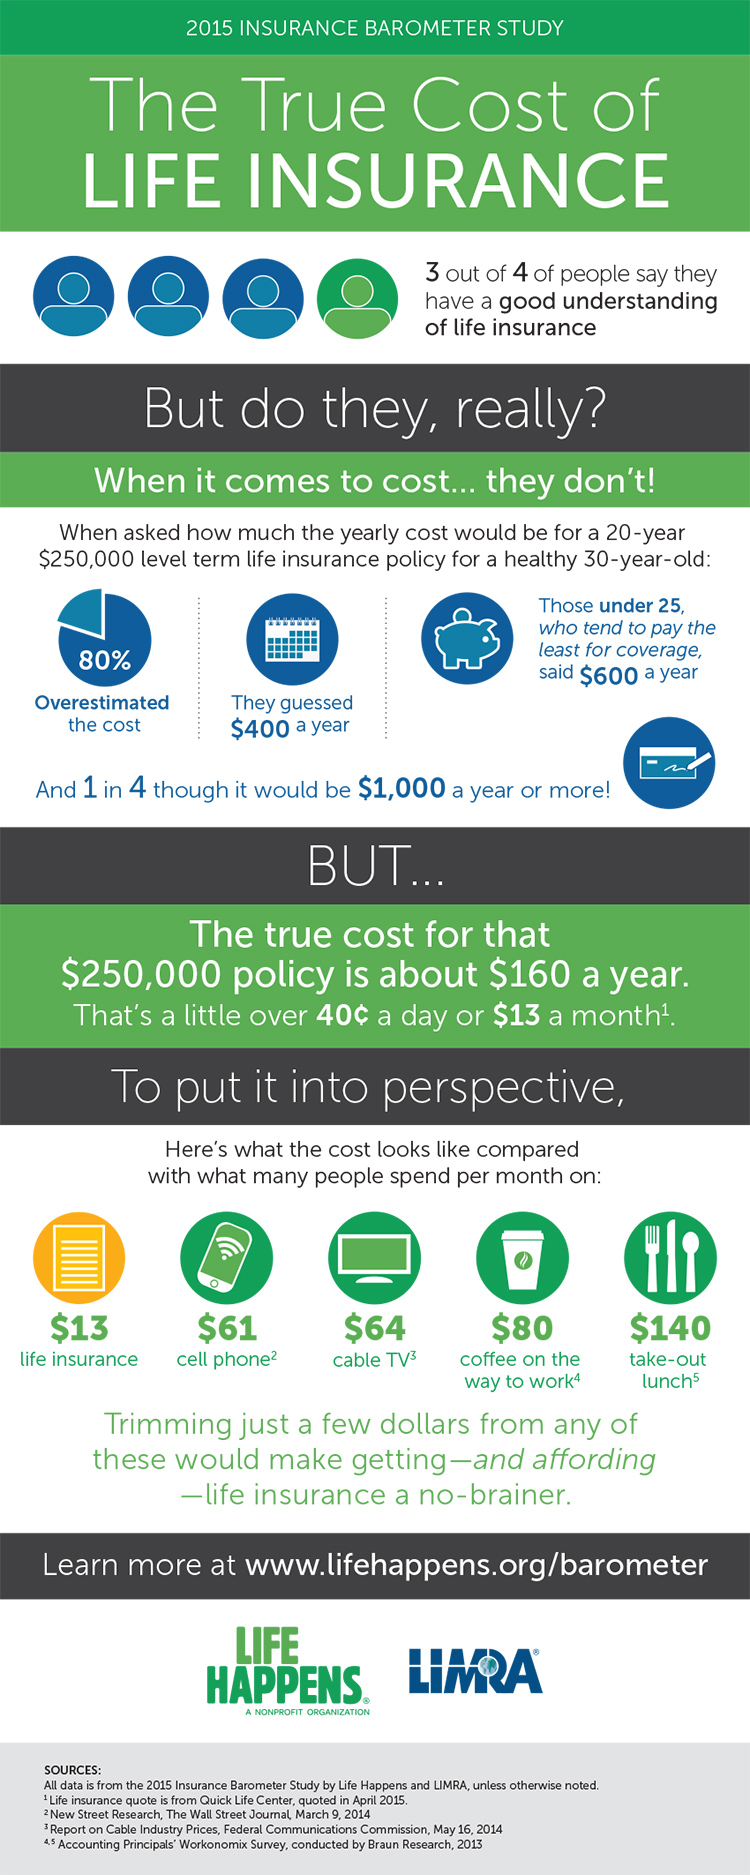 An infographic illustrating the true costs of life insurance